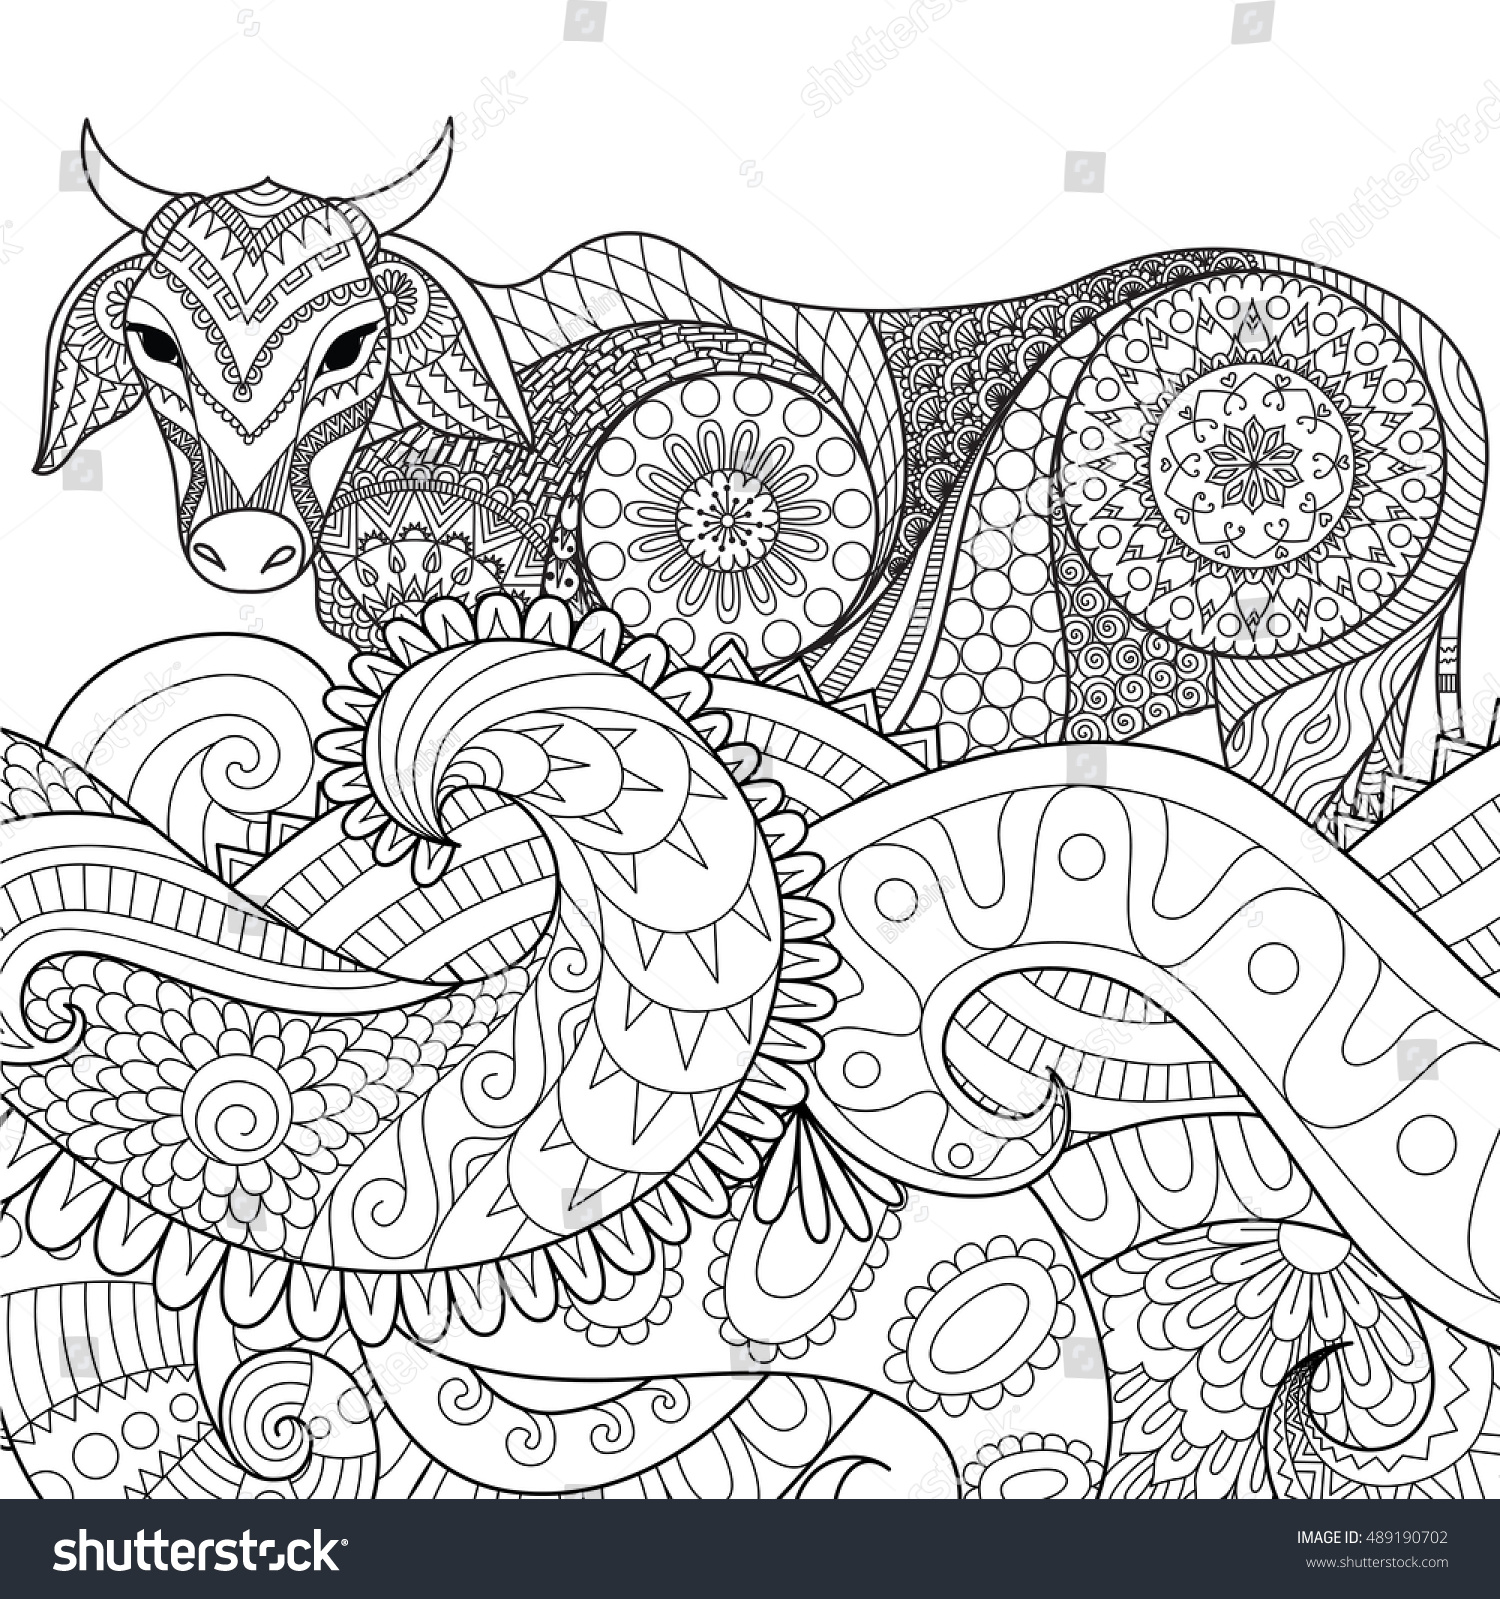 Zen ocean colouring book - Zendoodle Design Of Cow Swimming In The Ocean For Adult Coloring Book Pages